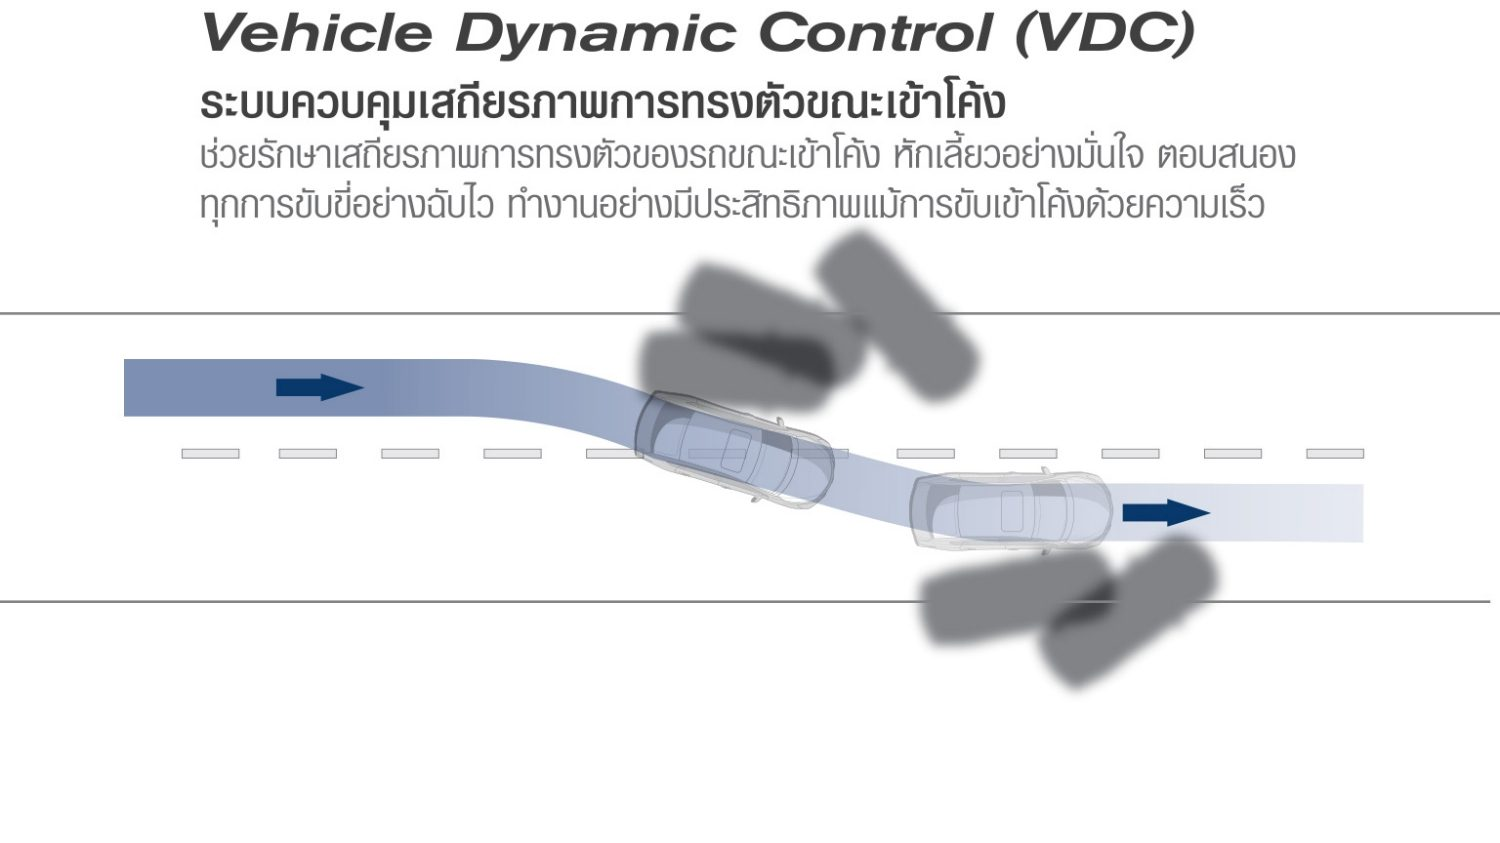 Vehicle Dynamics Control (VDC)